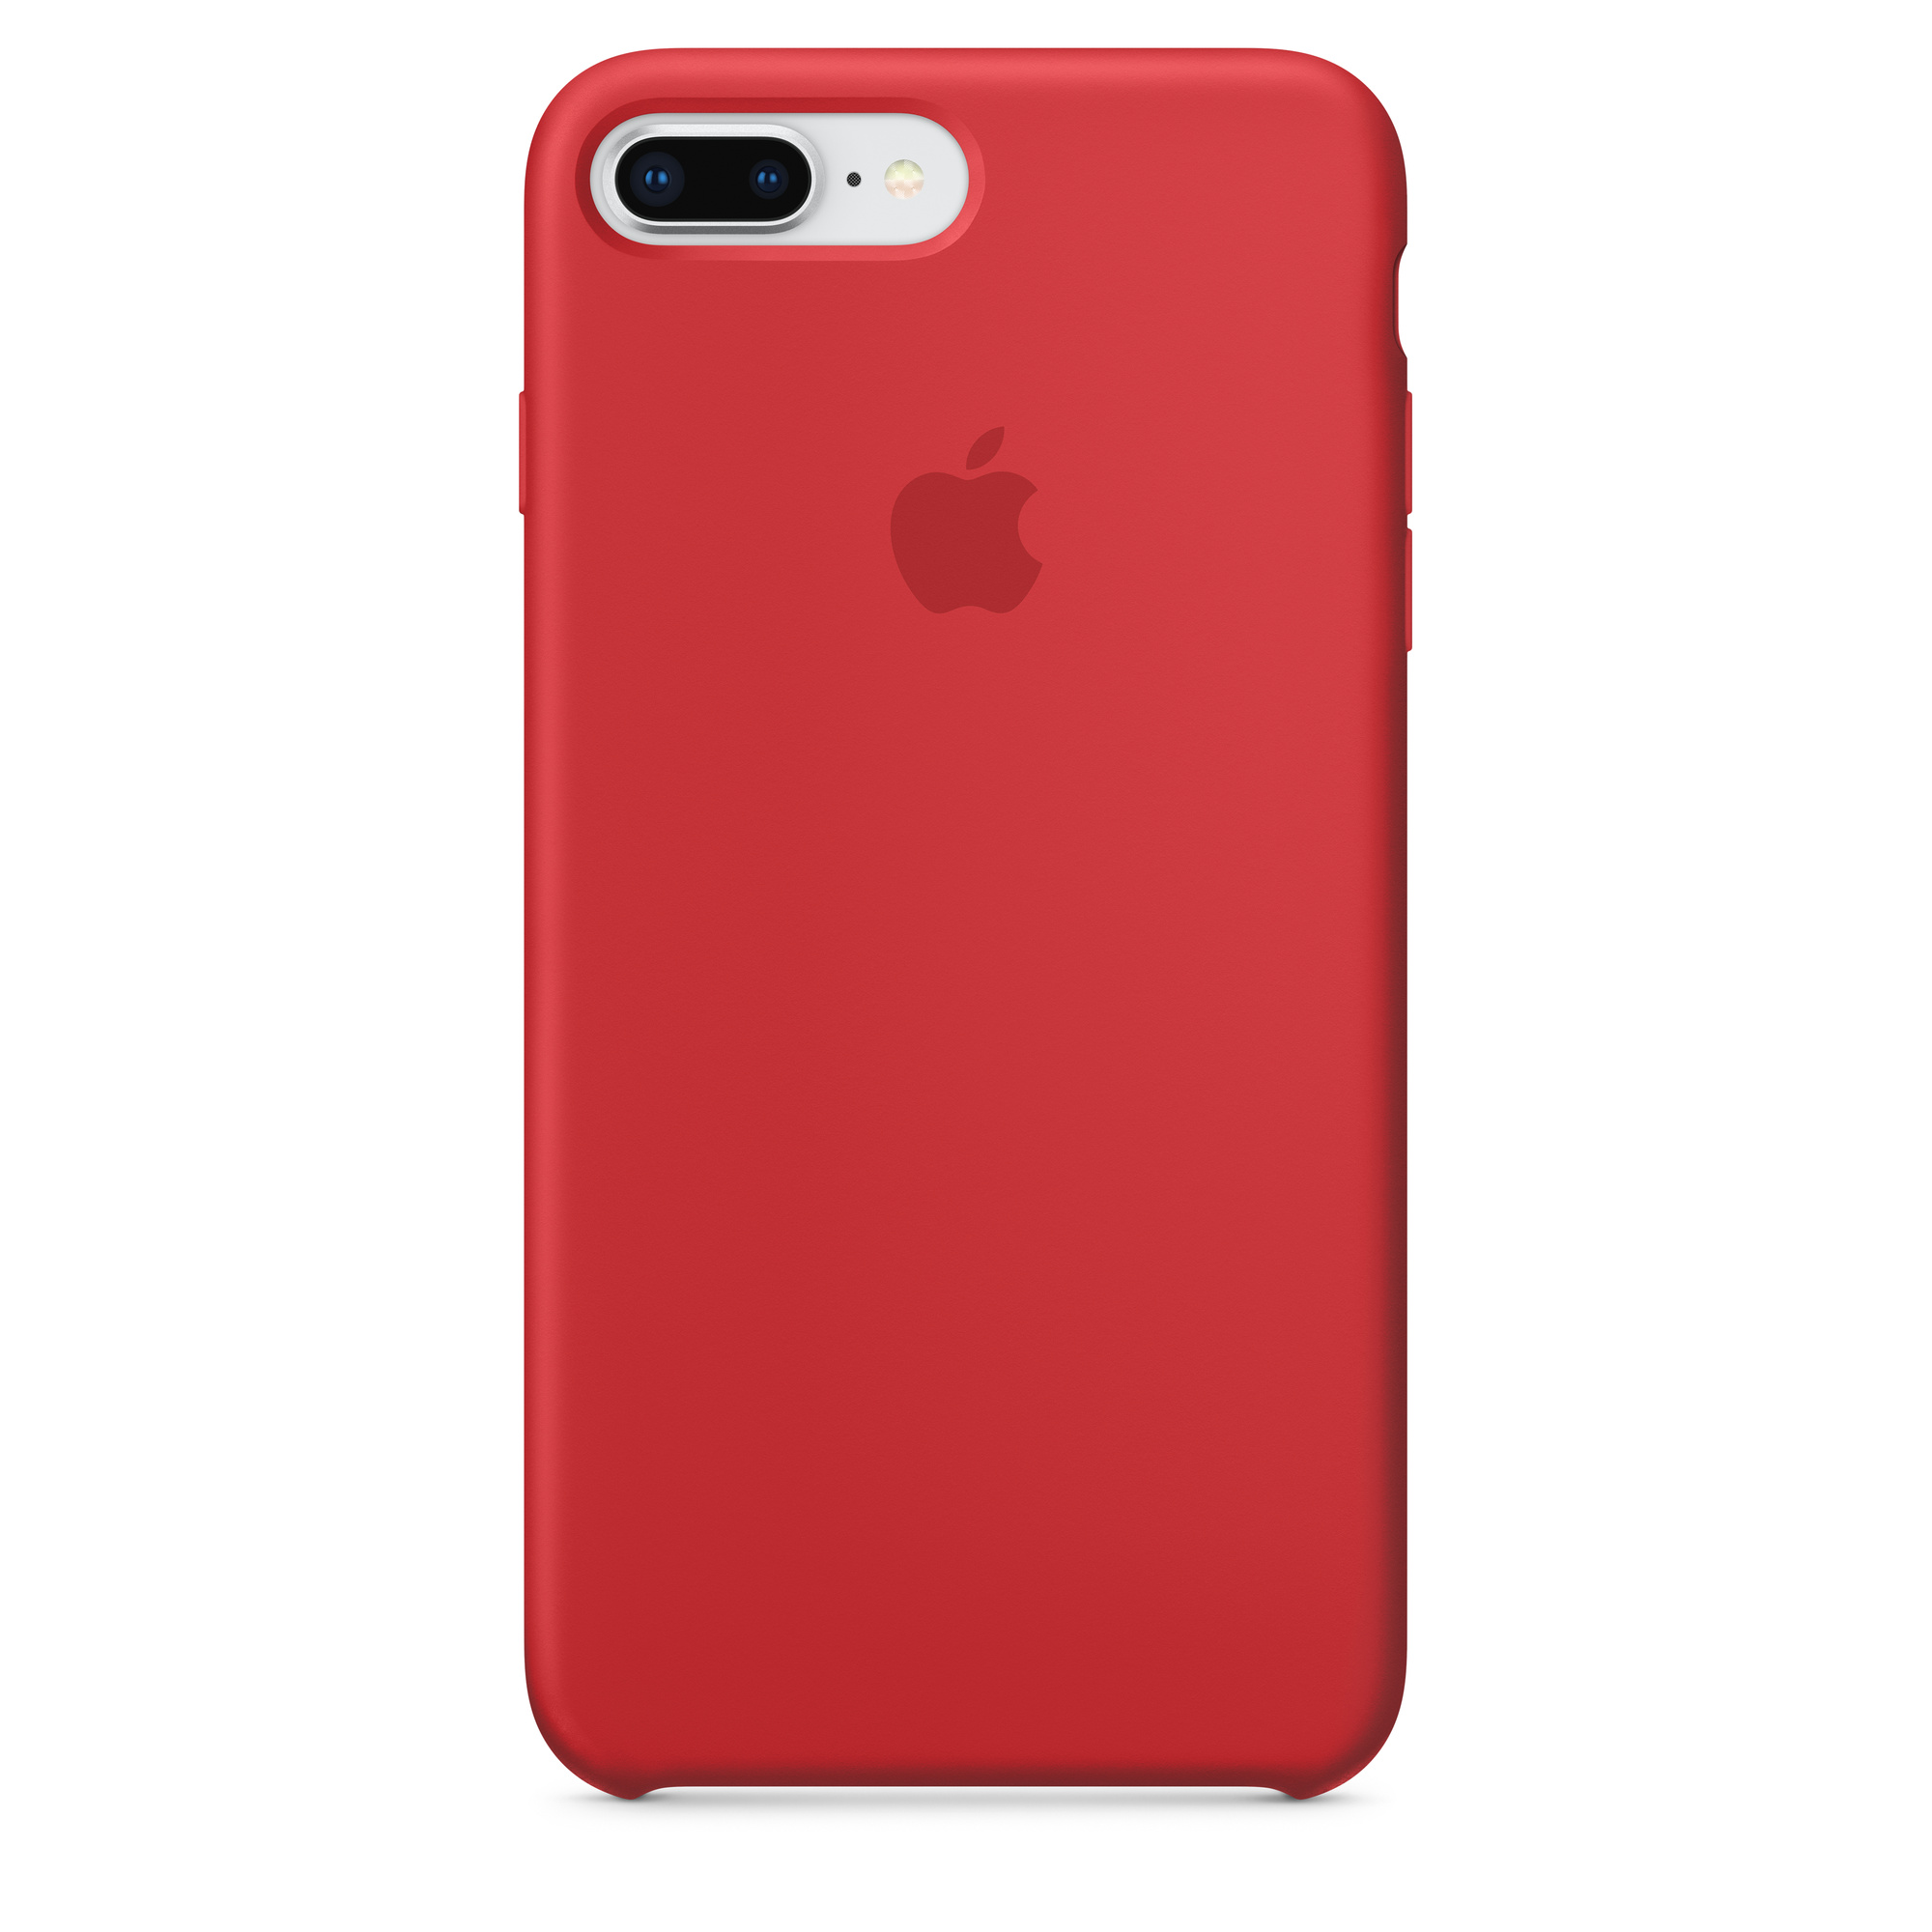 scarpe sportive b2505 1db40 iPhone 8 Plus / 7 Plus Silicone Case - (PRODUCT)RED